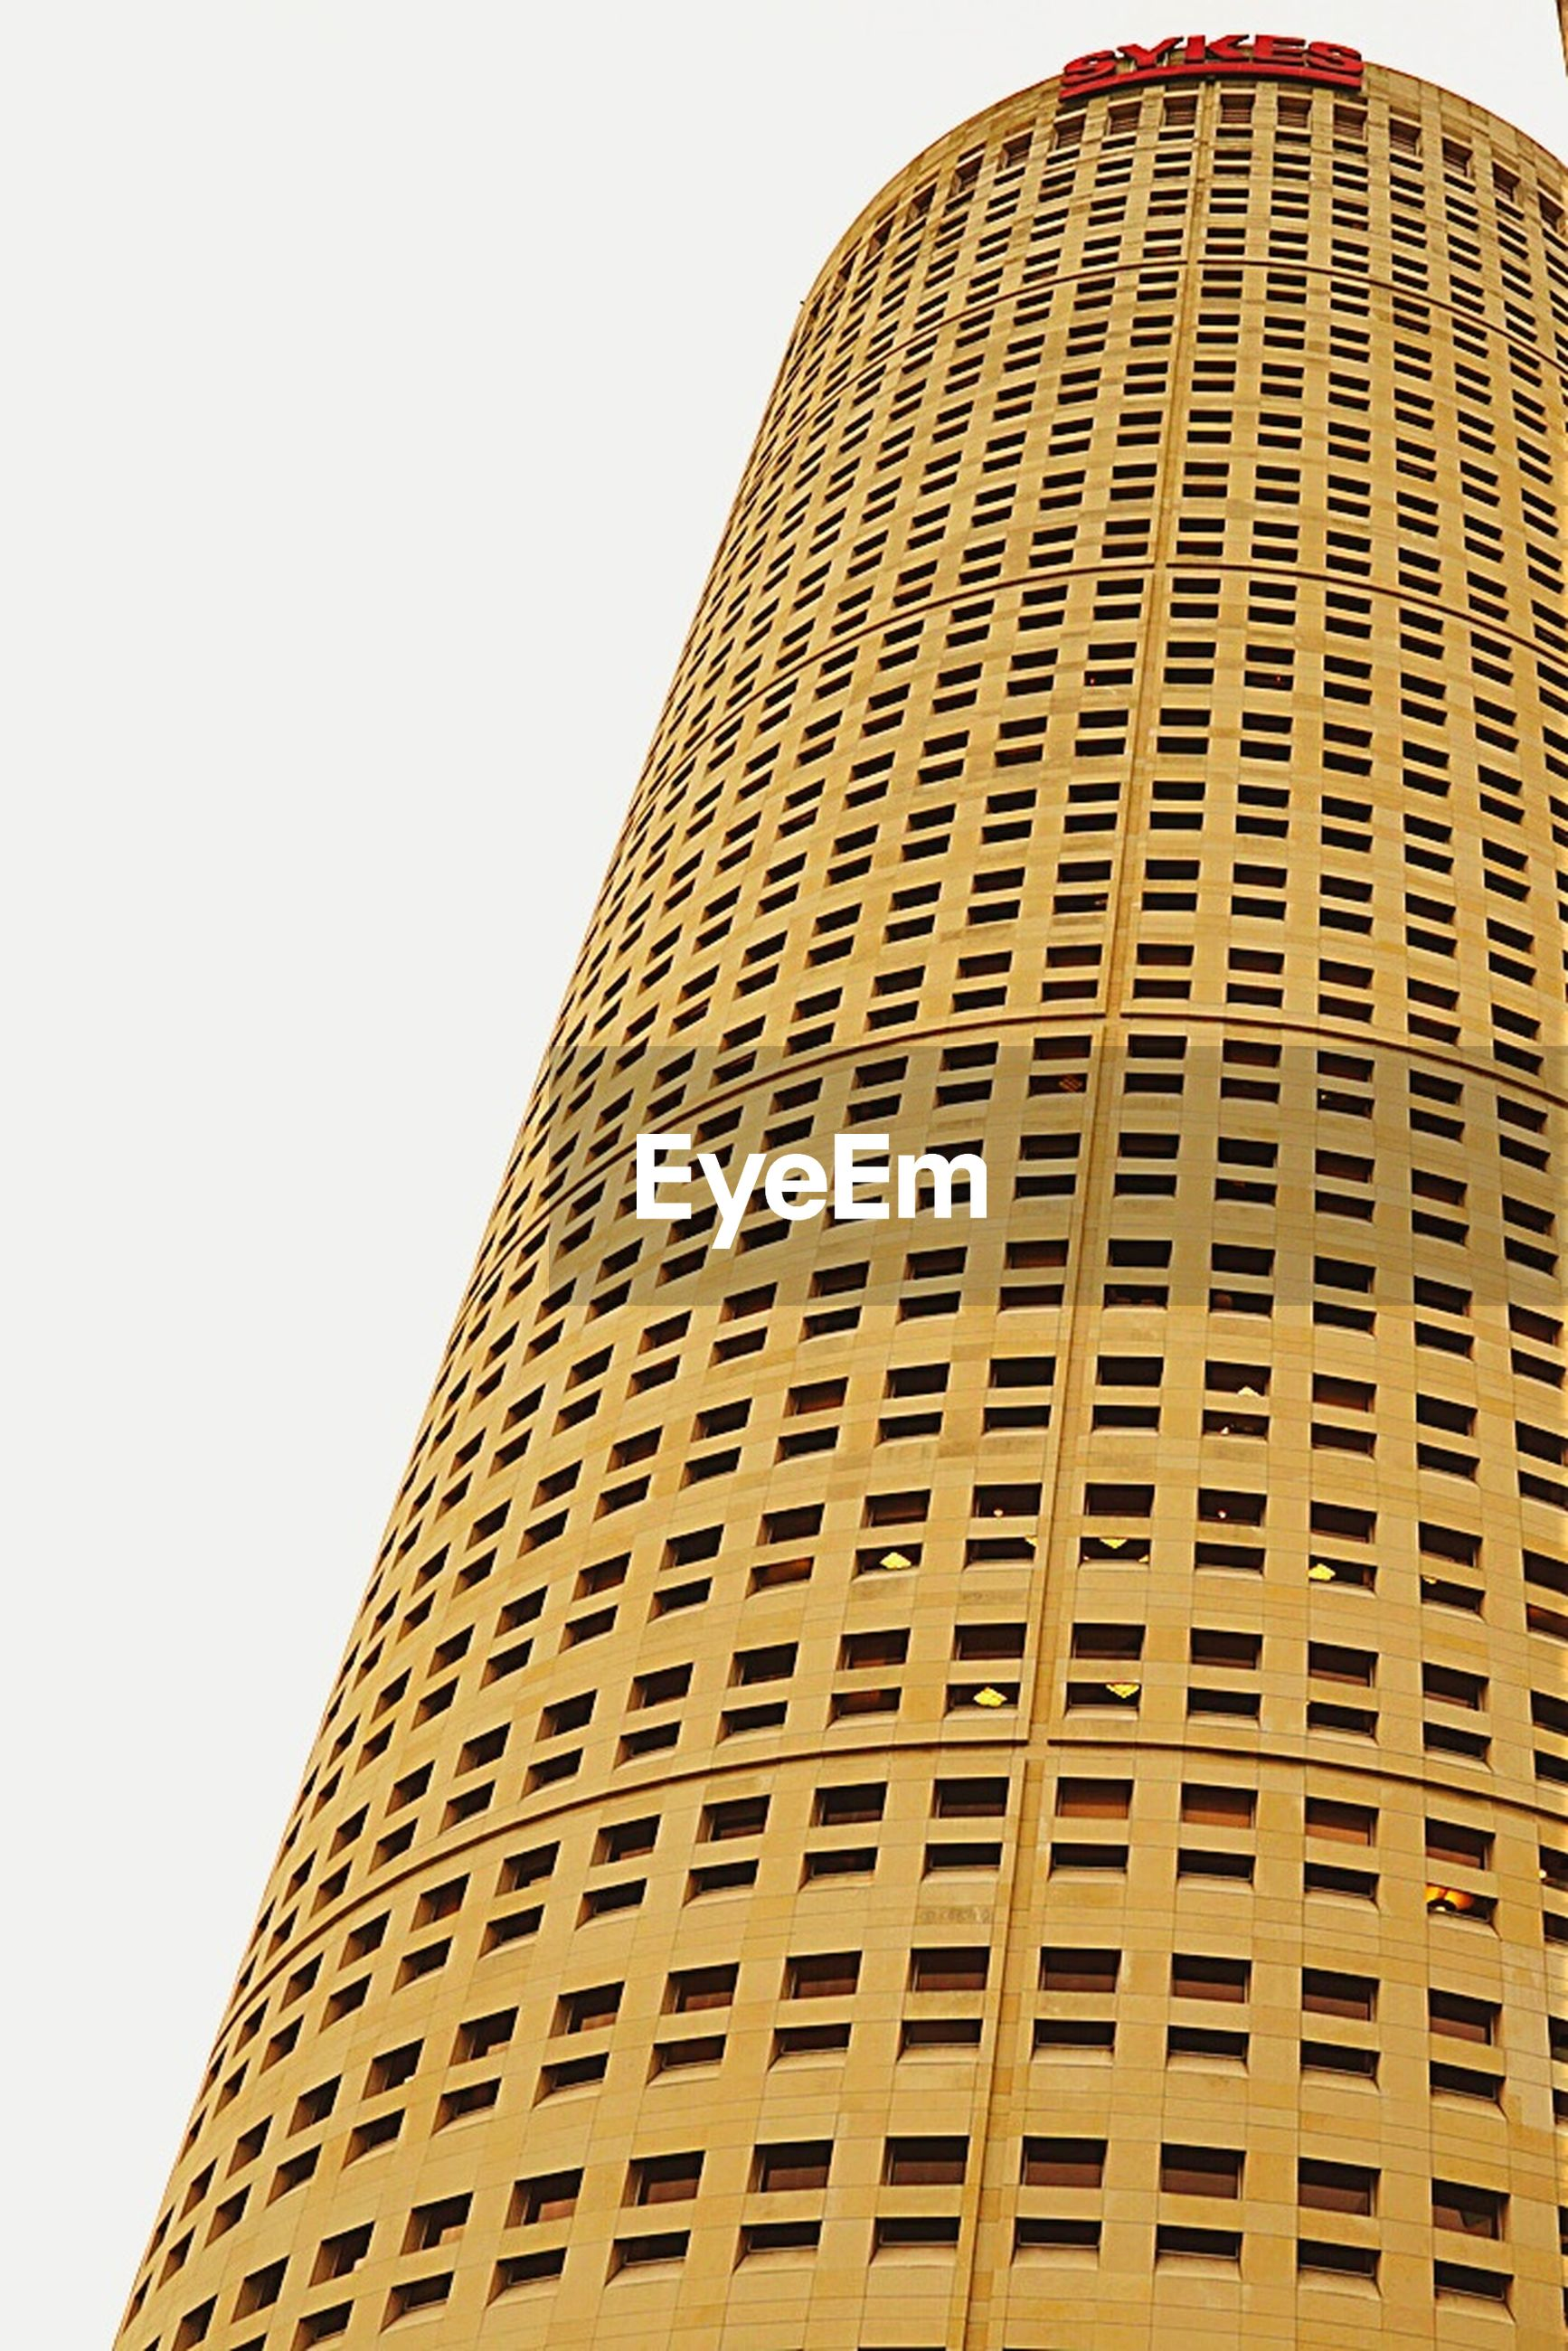 architecture, building exterior, built structure, low angle view, clear sky, tall - high, modern, tower, skyscraper, city, office building, building, day, tall, copy space, outdoors, no people, window, pattern, sky